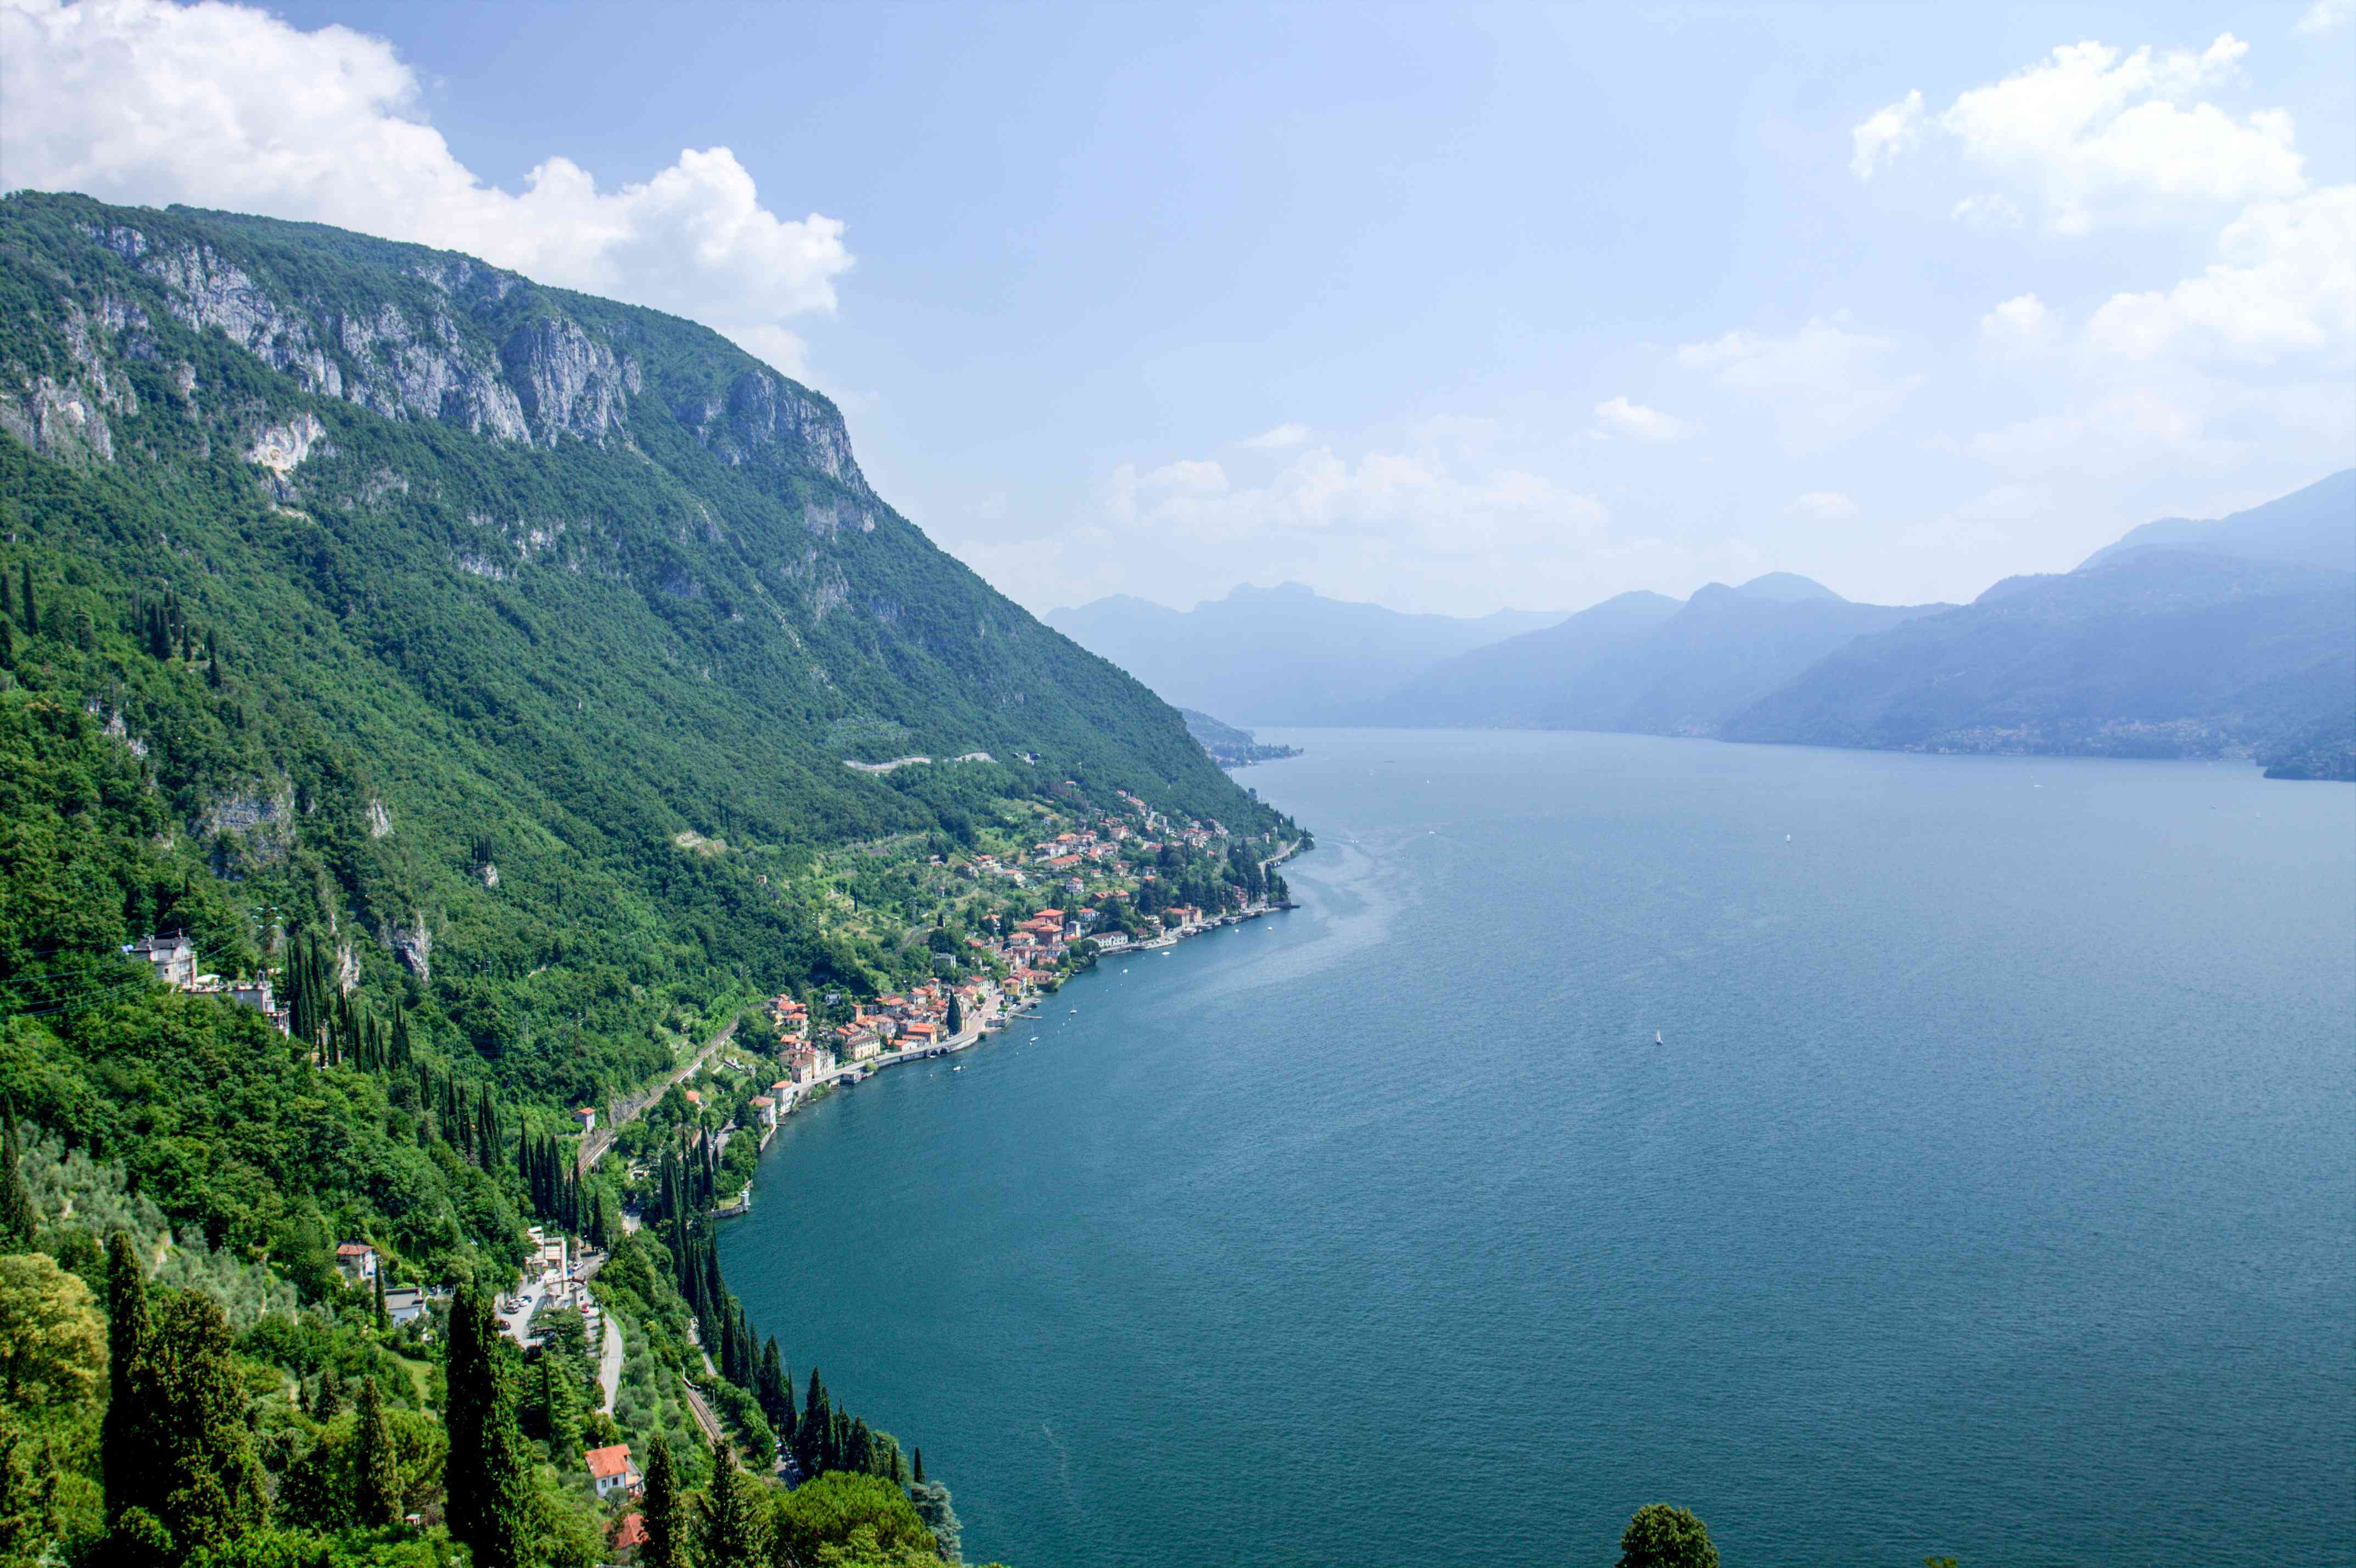 View of Lake como from a hiking trail